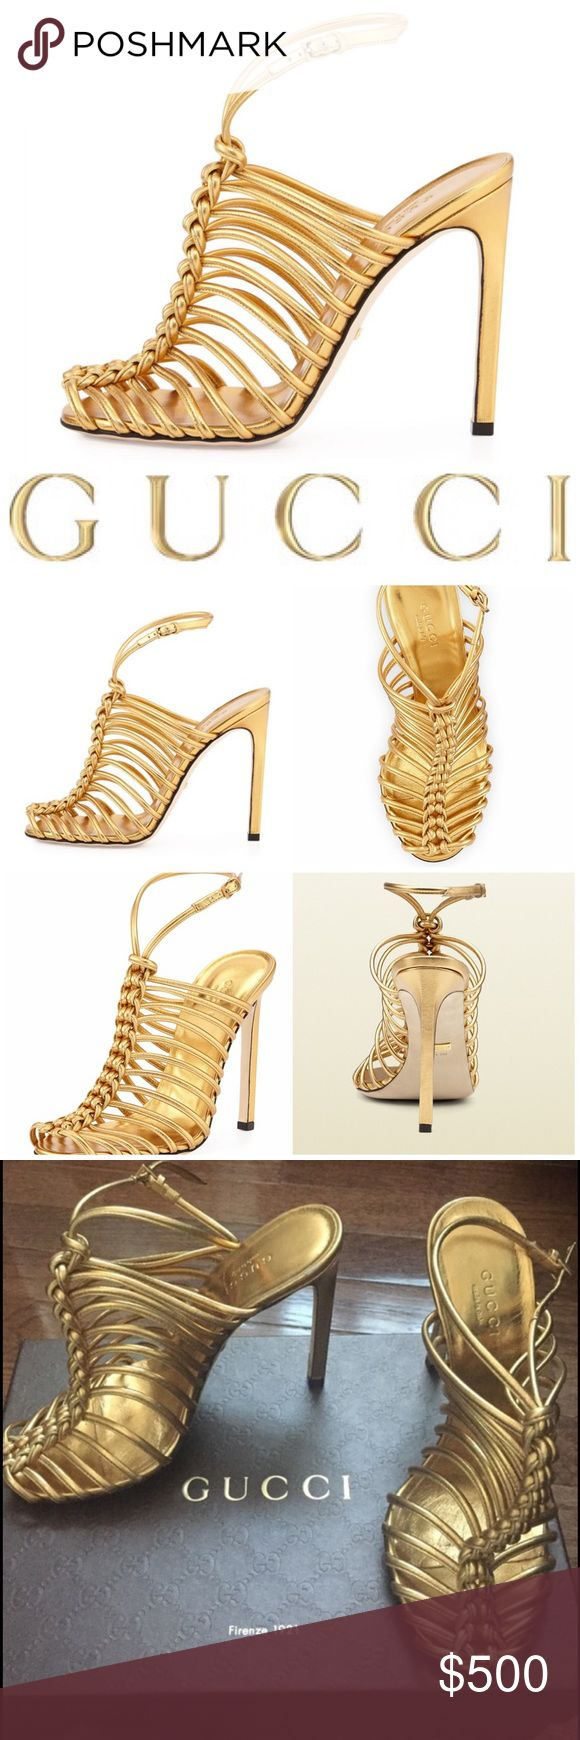 """Gucci: Strappy Knotted Gold Metallic Sandal Pumps Gucci Angelique. Metallic napa leather Gucci sandal heels in gold. Lace up. Knots.  4 3/4"""" covered straight heel. Peep toe; knotted cage vamp. Adjustable ankle strap. Leather footbed and sole. Made in Italy. As seen on Nicki Manaj and Stevie J's Jocelyn Hernandez. Come in original box with original dust bag. Size 6 (true to size). Retail $795. Brisette #611 Gucci Shoes Heels"""